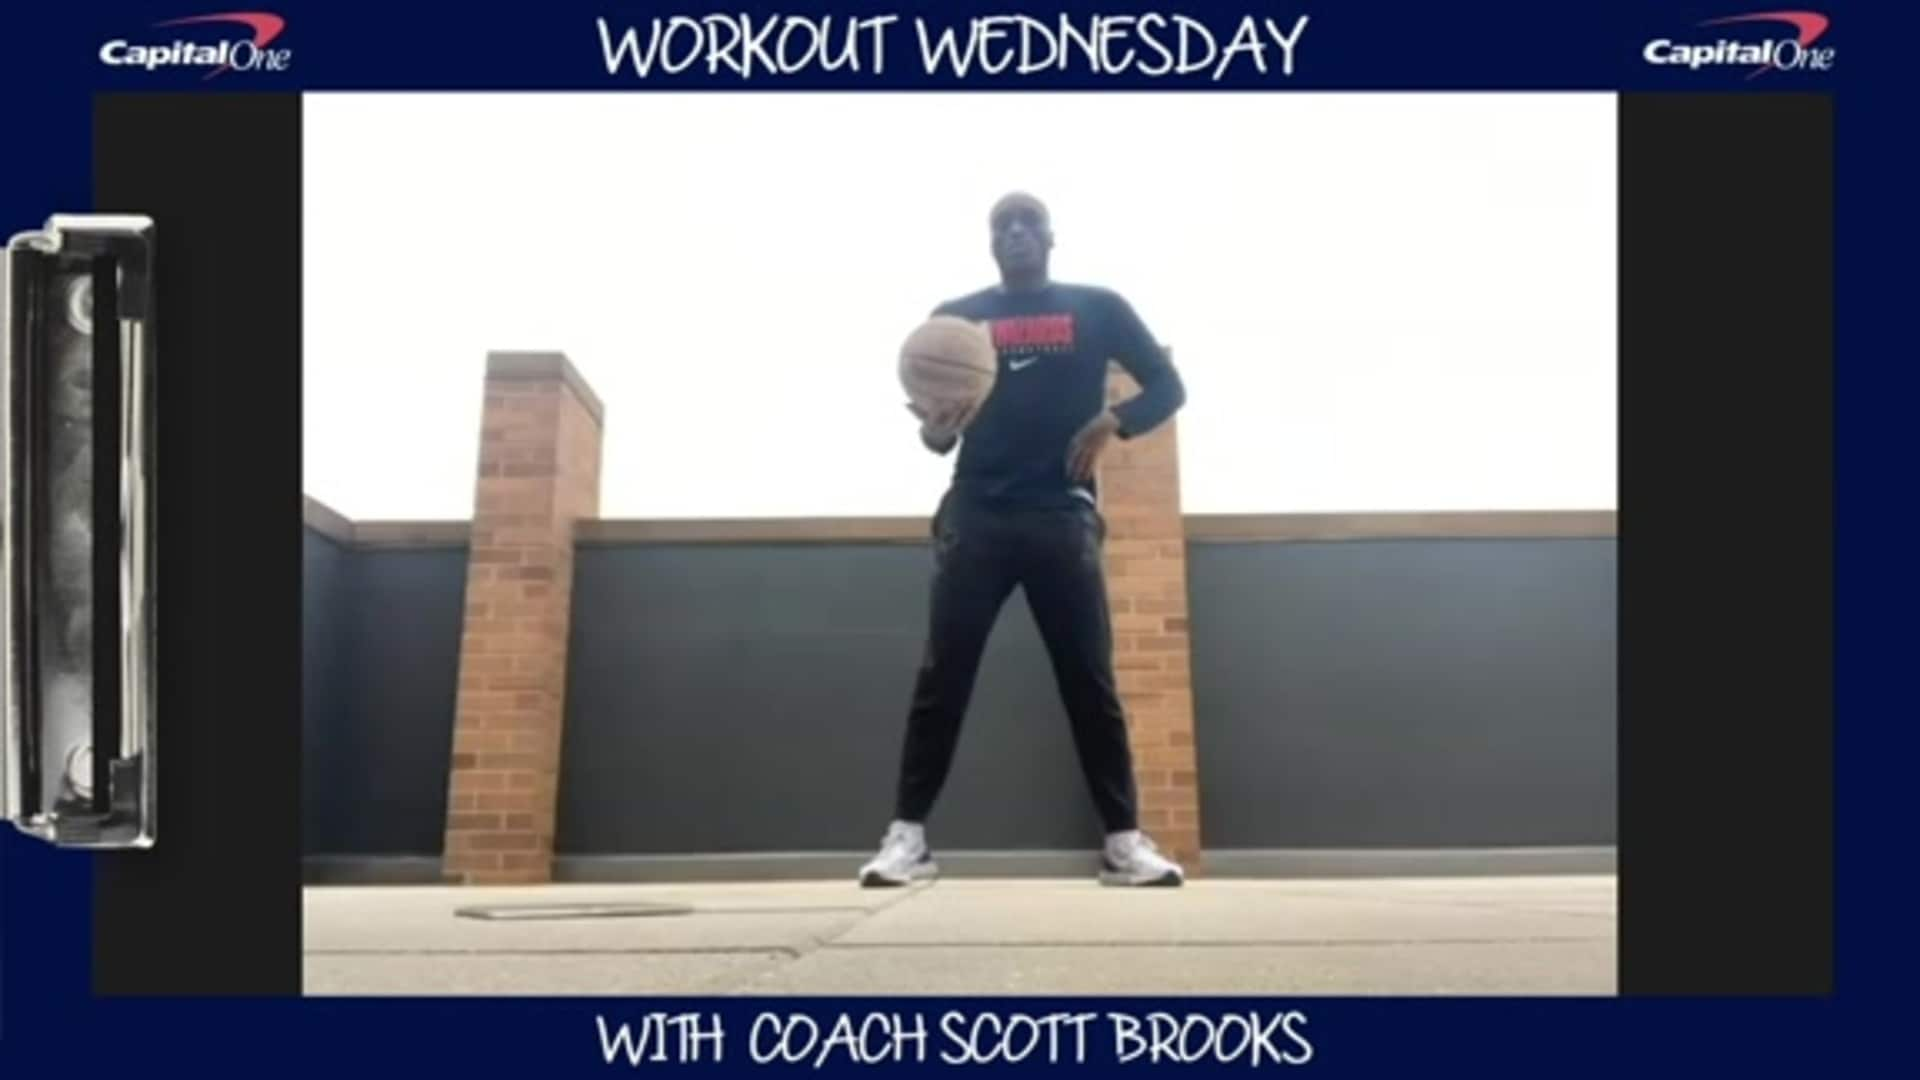 Coach Scott Brooks' Workout Wednesdays presented by Capital One - 5/6/30